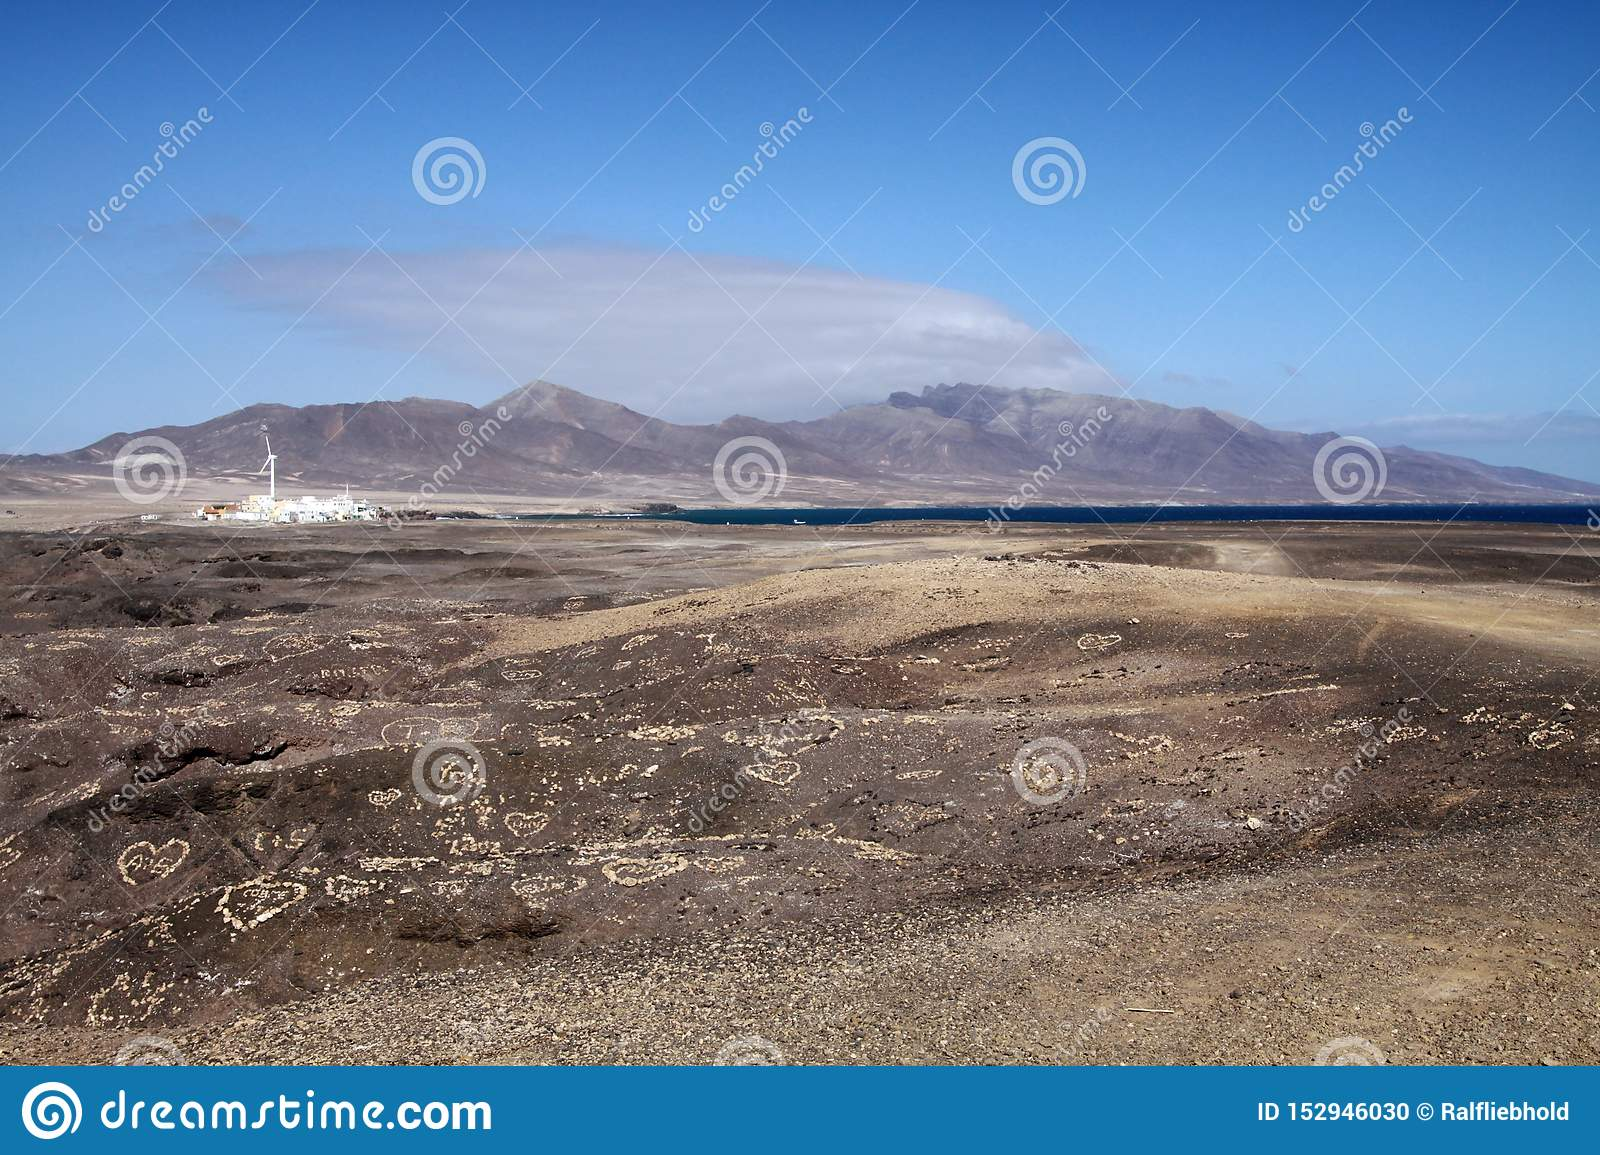 View on small white village, mountain range and spot of blue ocean over endless barren land, Fuerteventura, Canary Islands